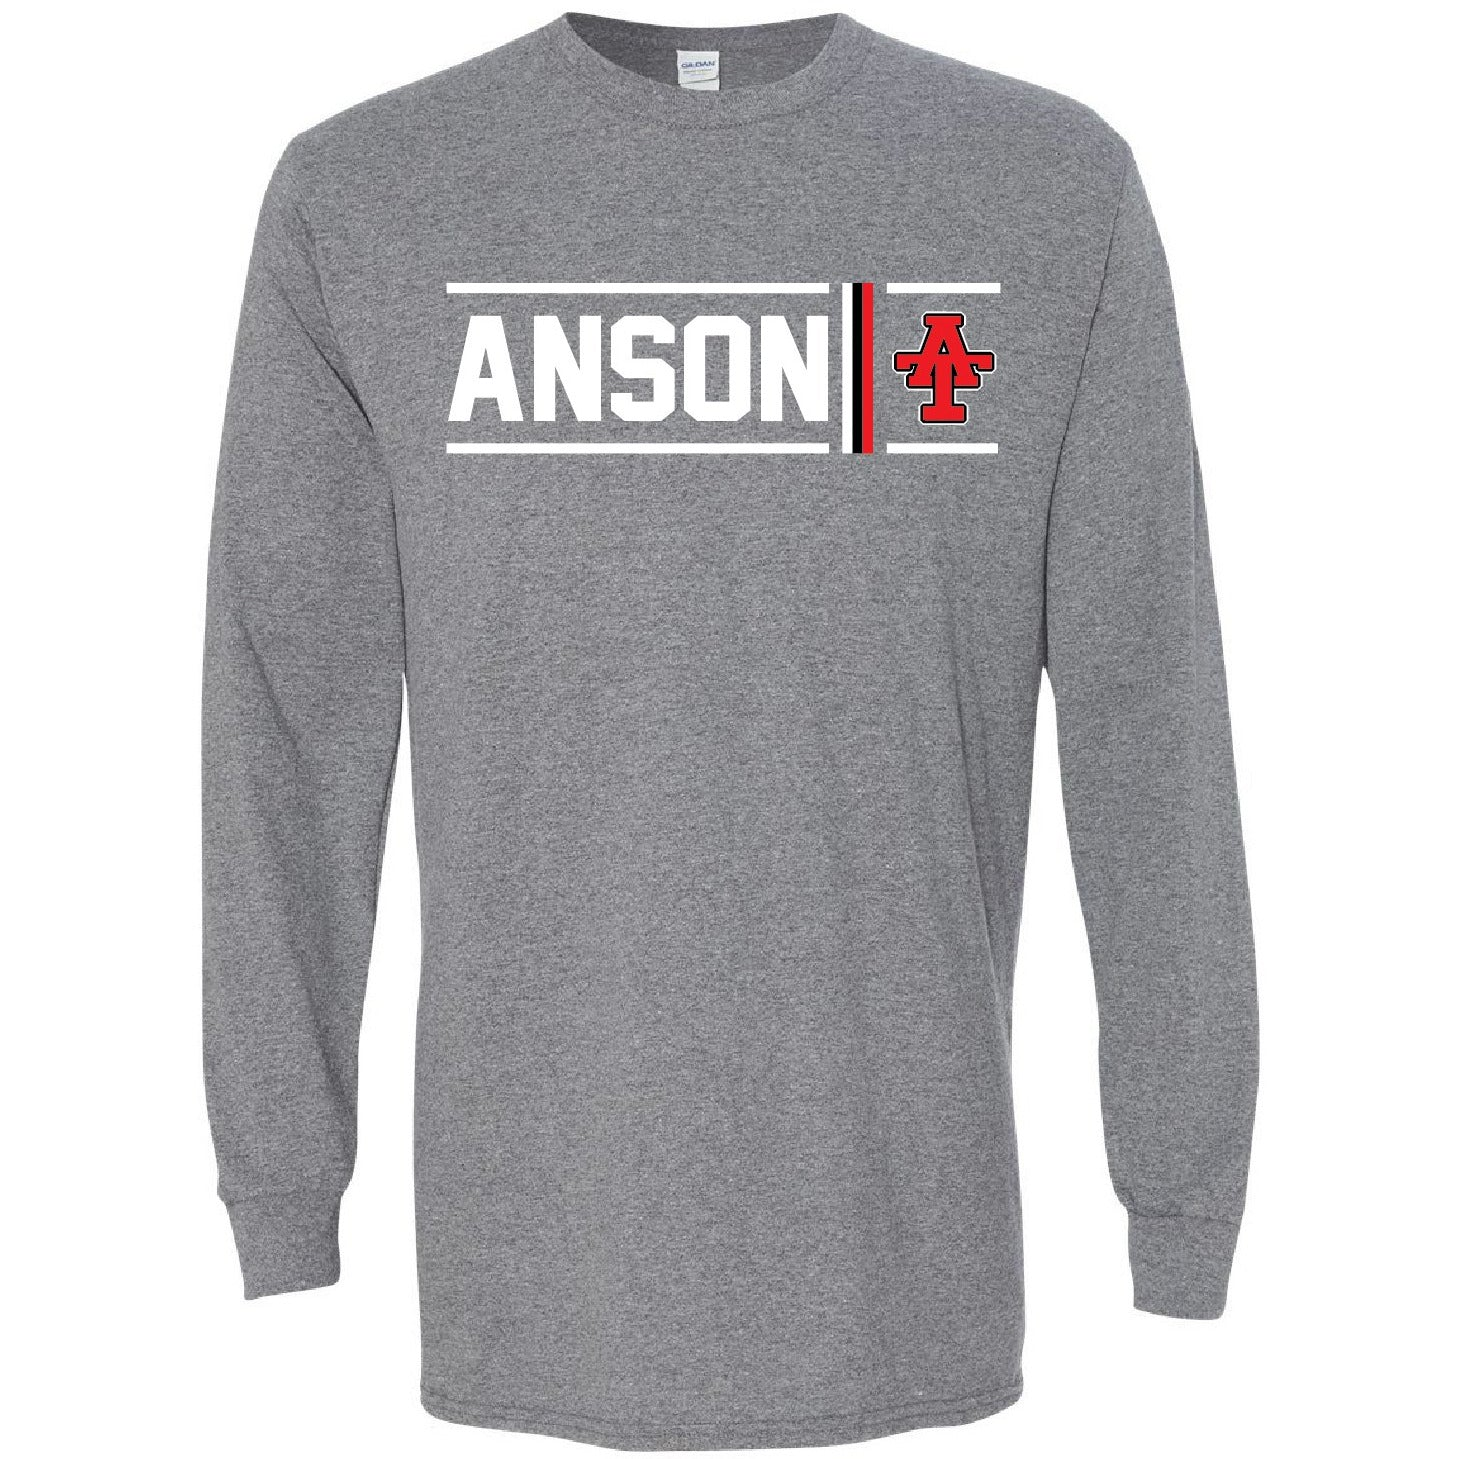 Anson Tigers - Simple Stripe Long Sleeve T-Shirt